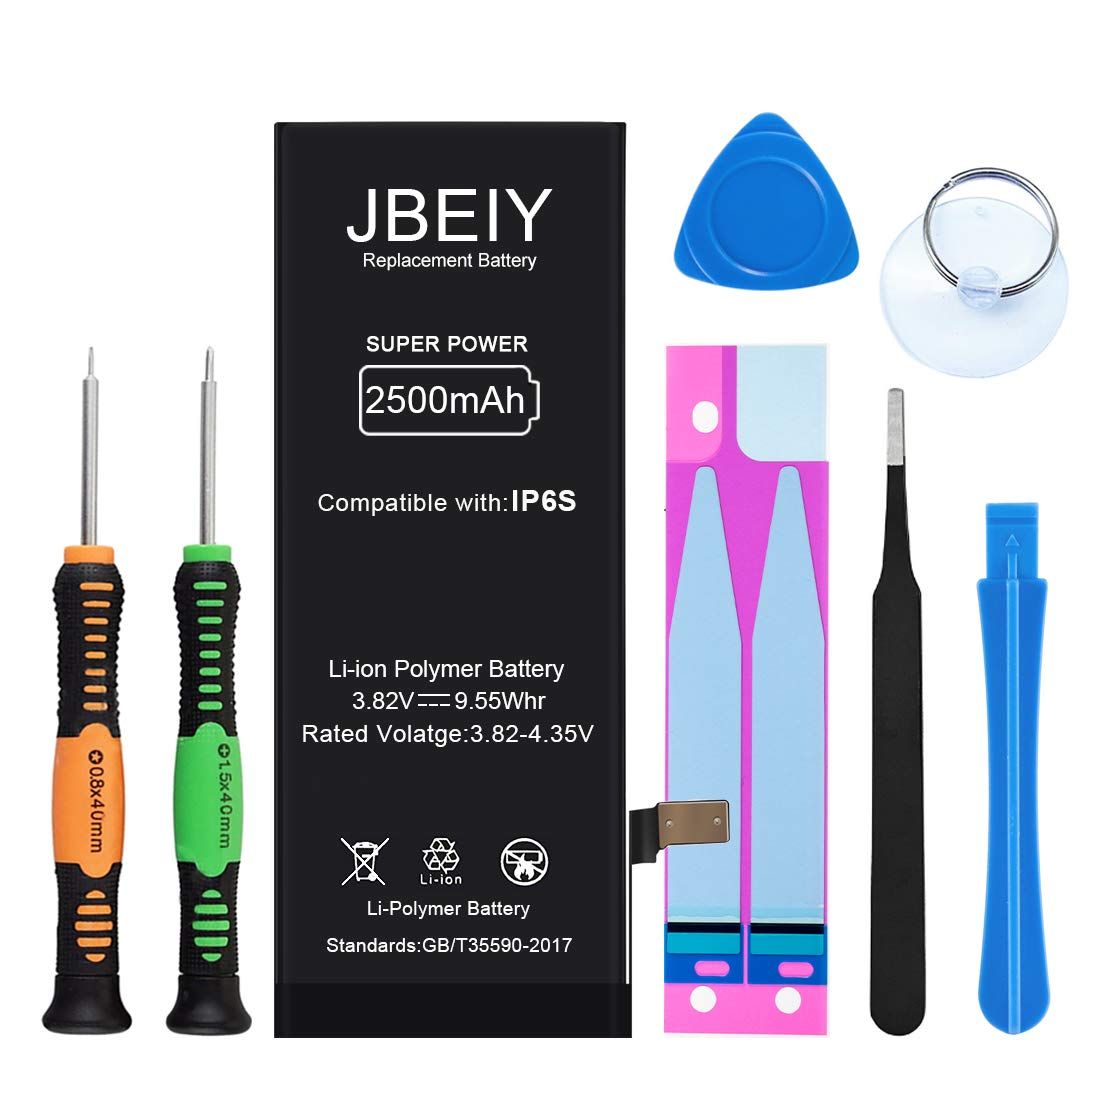 JBEIY Battery Compatible with iPhone 6S, 2500mAh Super High Capacity Replacement Battery New 0 Cycle, with Professional Replacement Tool Kit and Instructions -1 Year Warranty by JBEIY